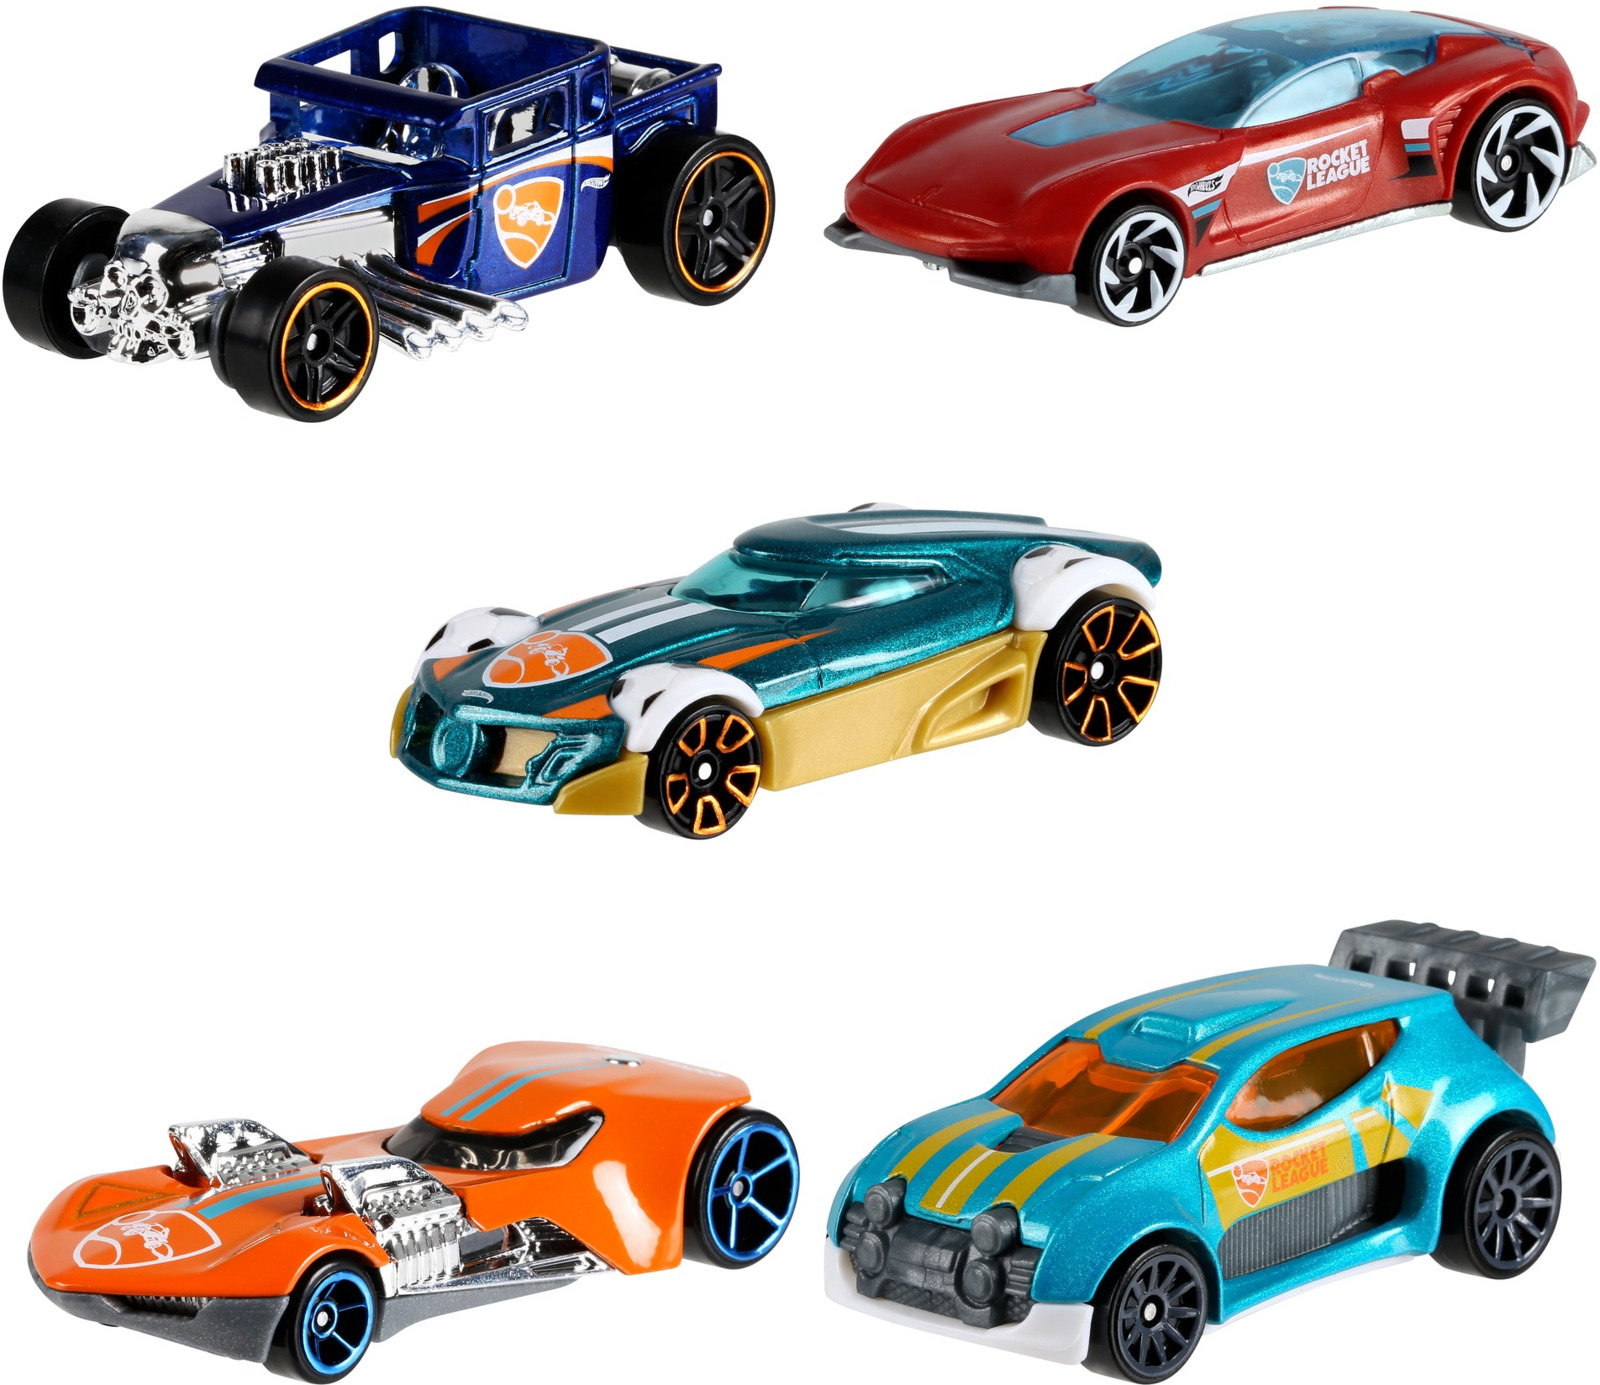 Набор машинок Hot Wheels Rocket League, 1806_FYL23, 5 шт new hot 25cm batman batgirl justice league batwoman enhanced version action figure toys collection christmas gift